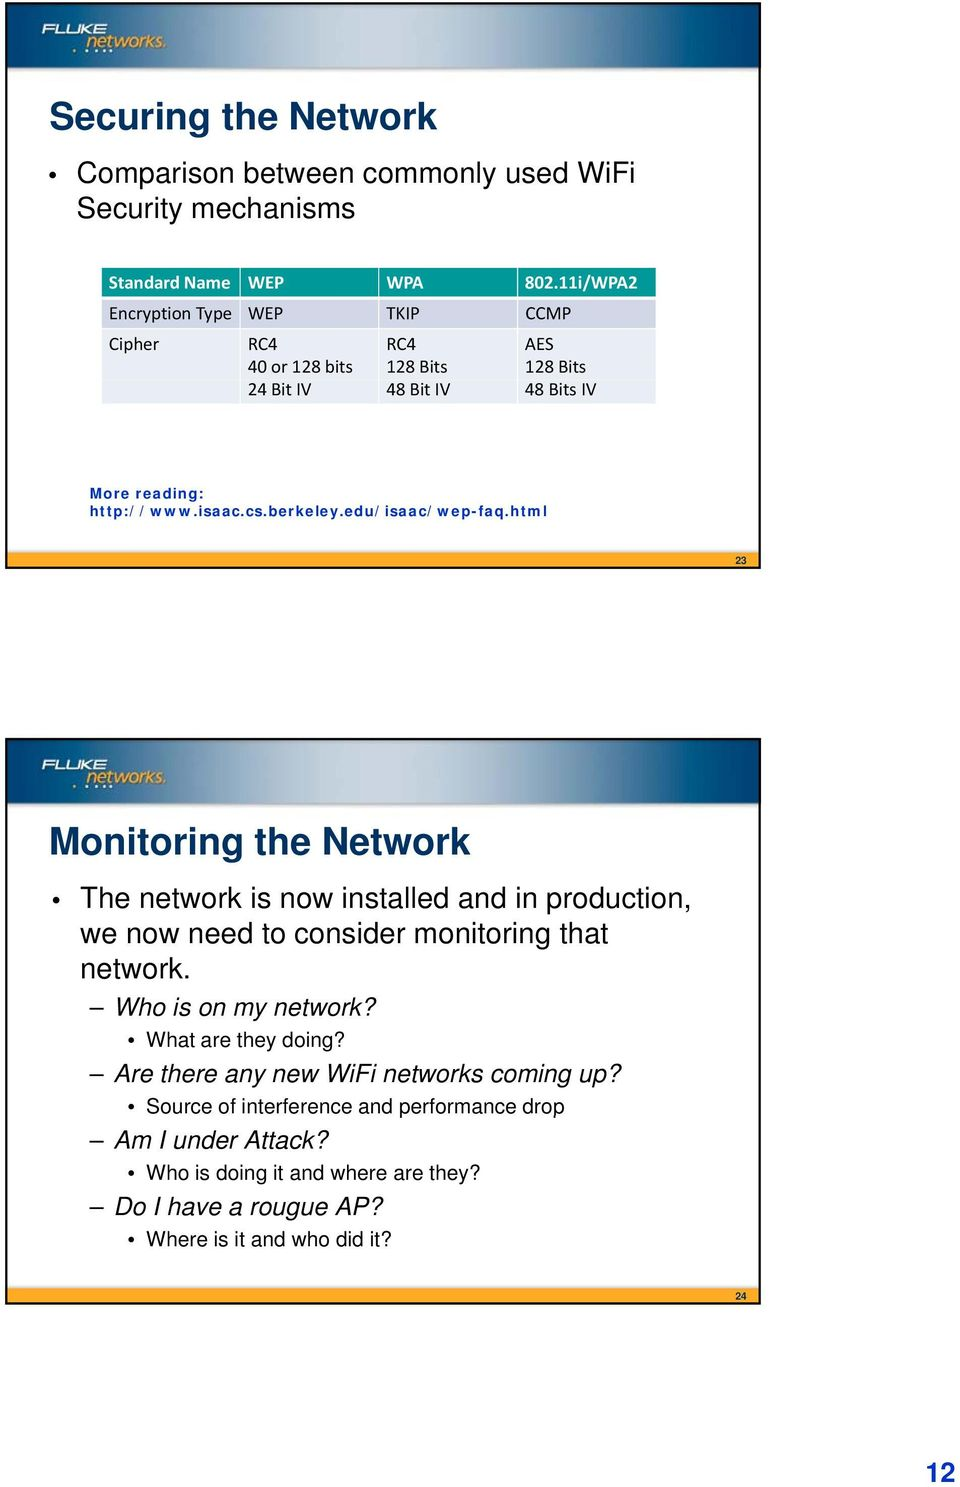 edu/isaac/wep-faq.html 23 Monitoring the Network The network is now installed and in production, we now need to consider monitoring i that t network.